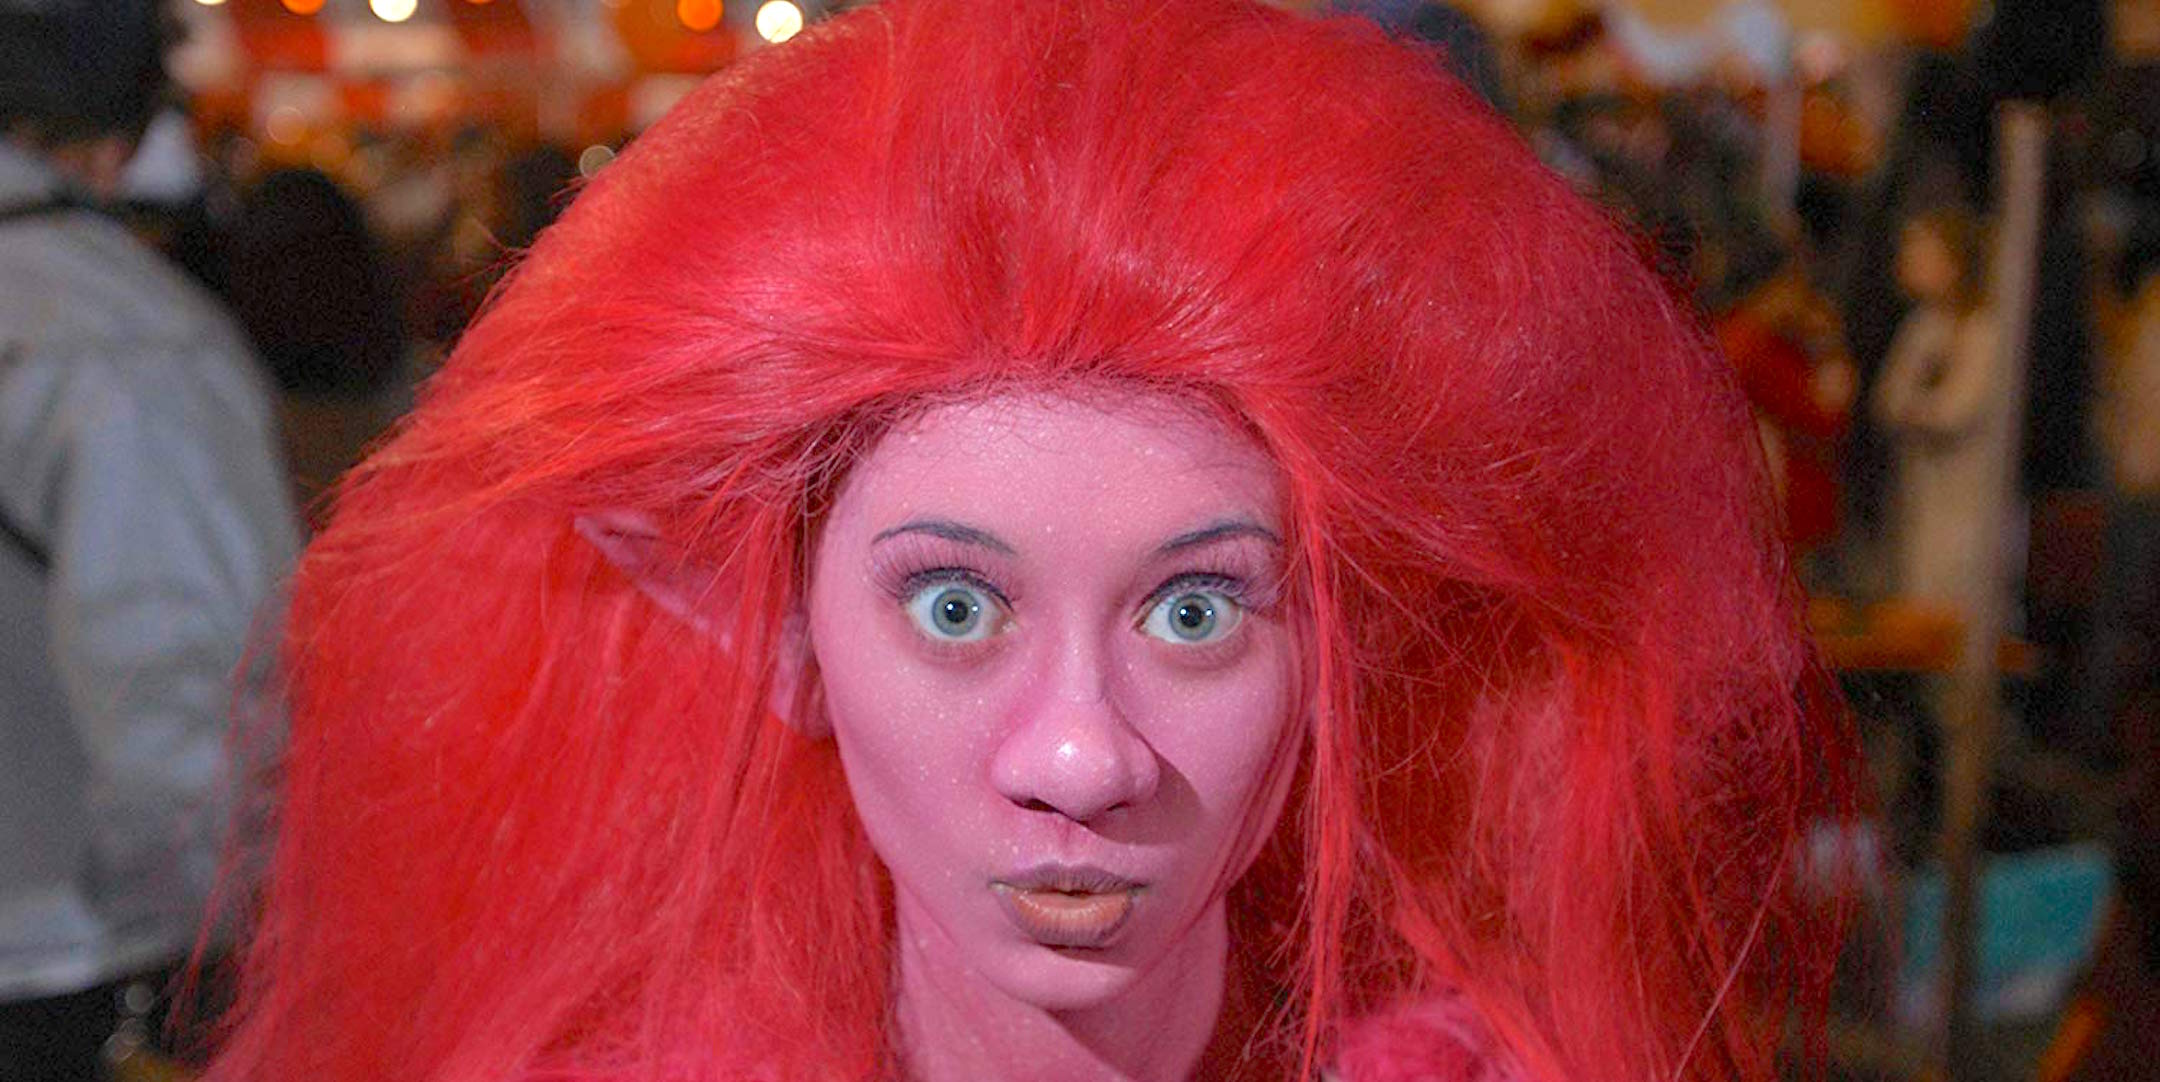 halloweentown high, halloween, Disney, troll, costume, jessica, pink, colorful